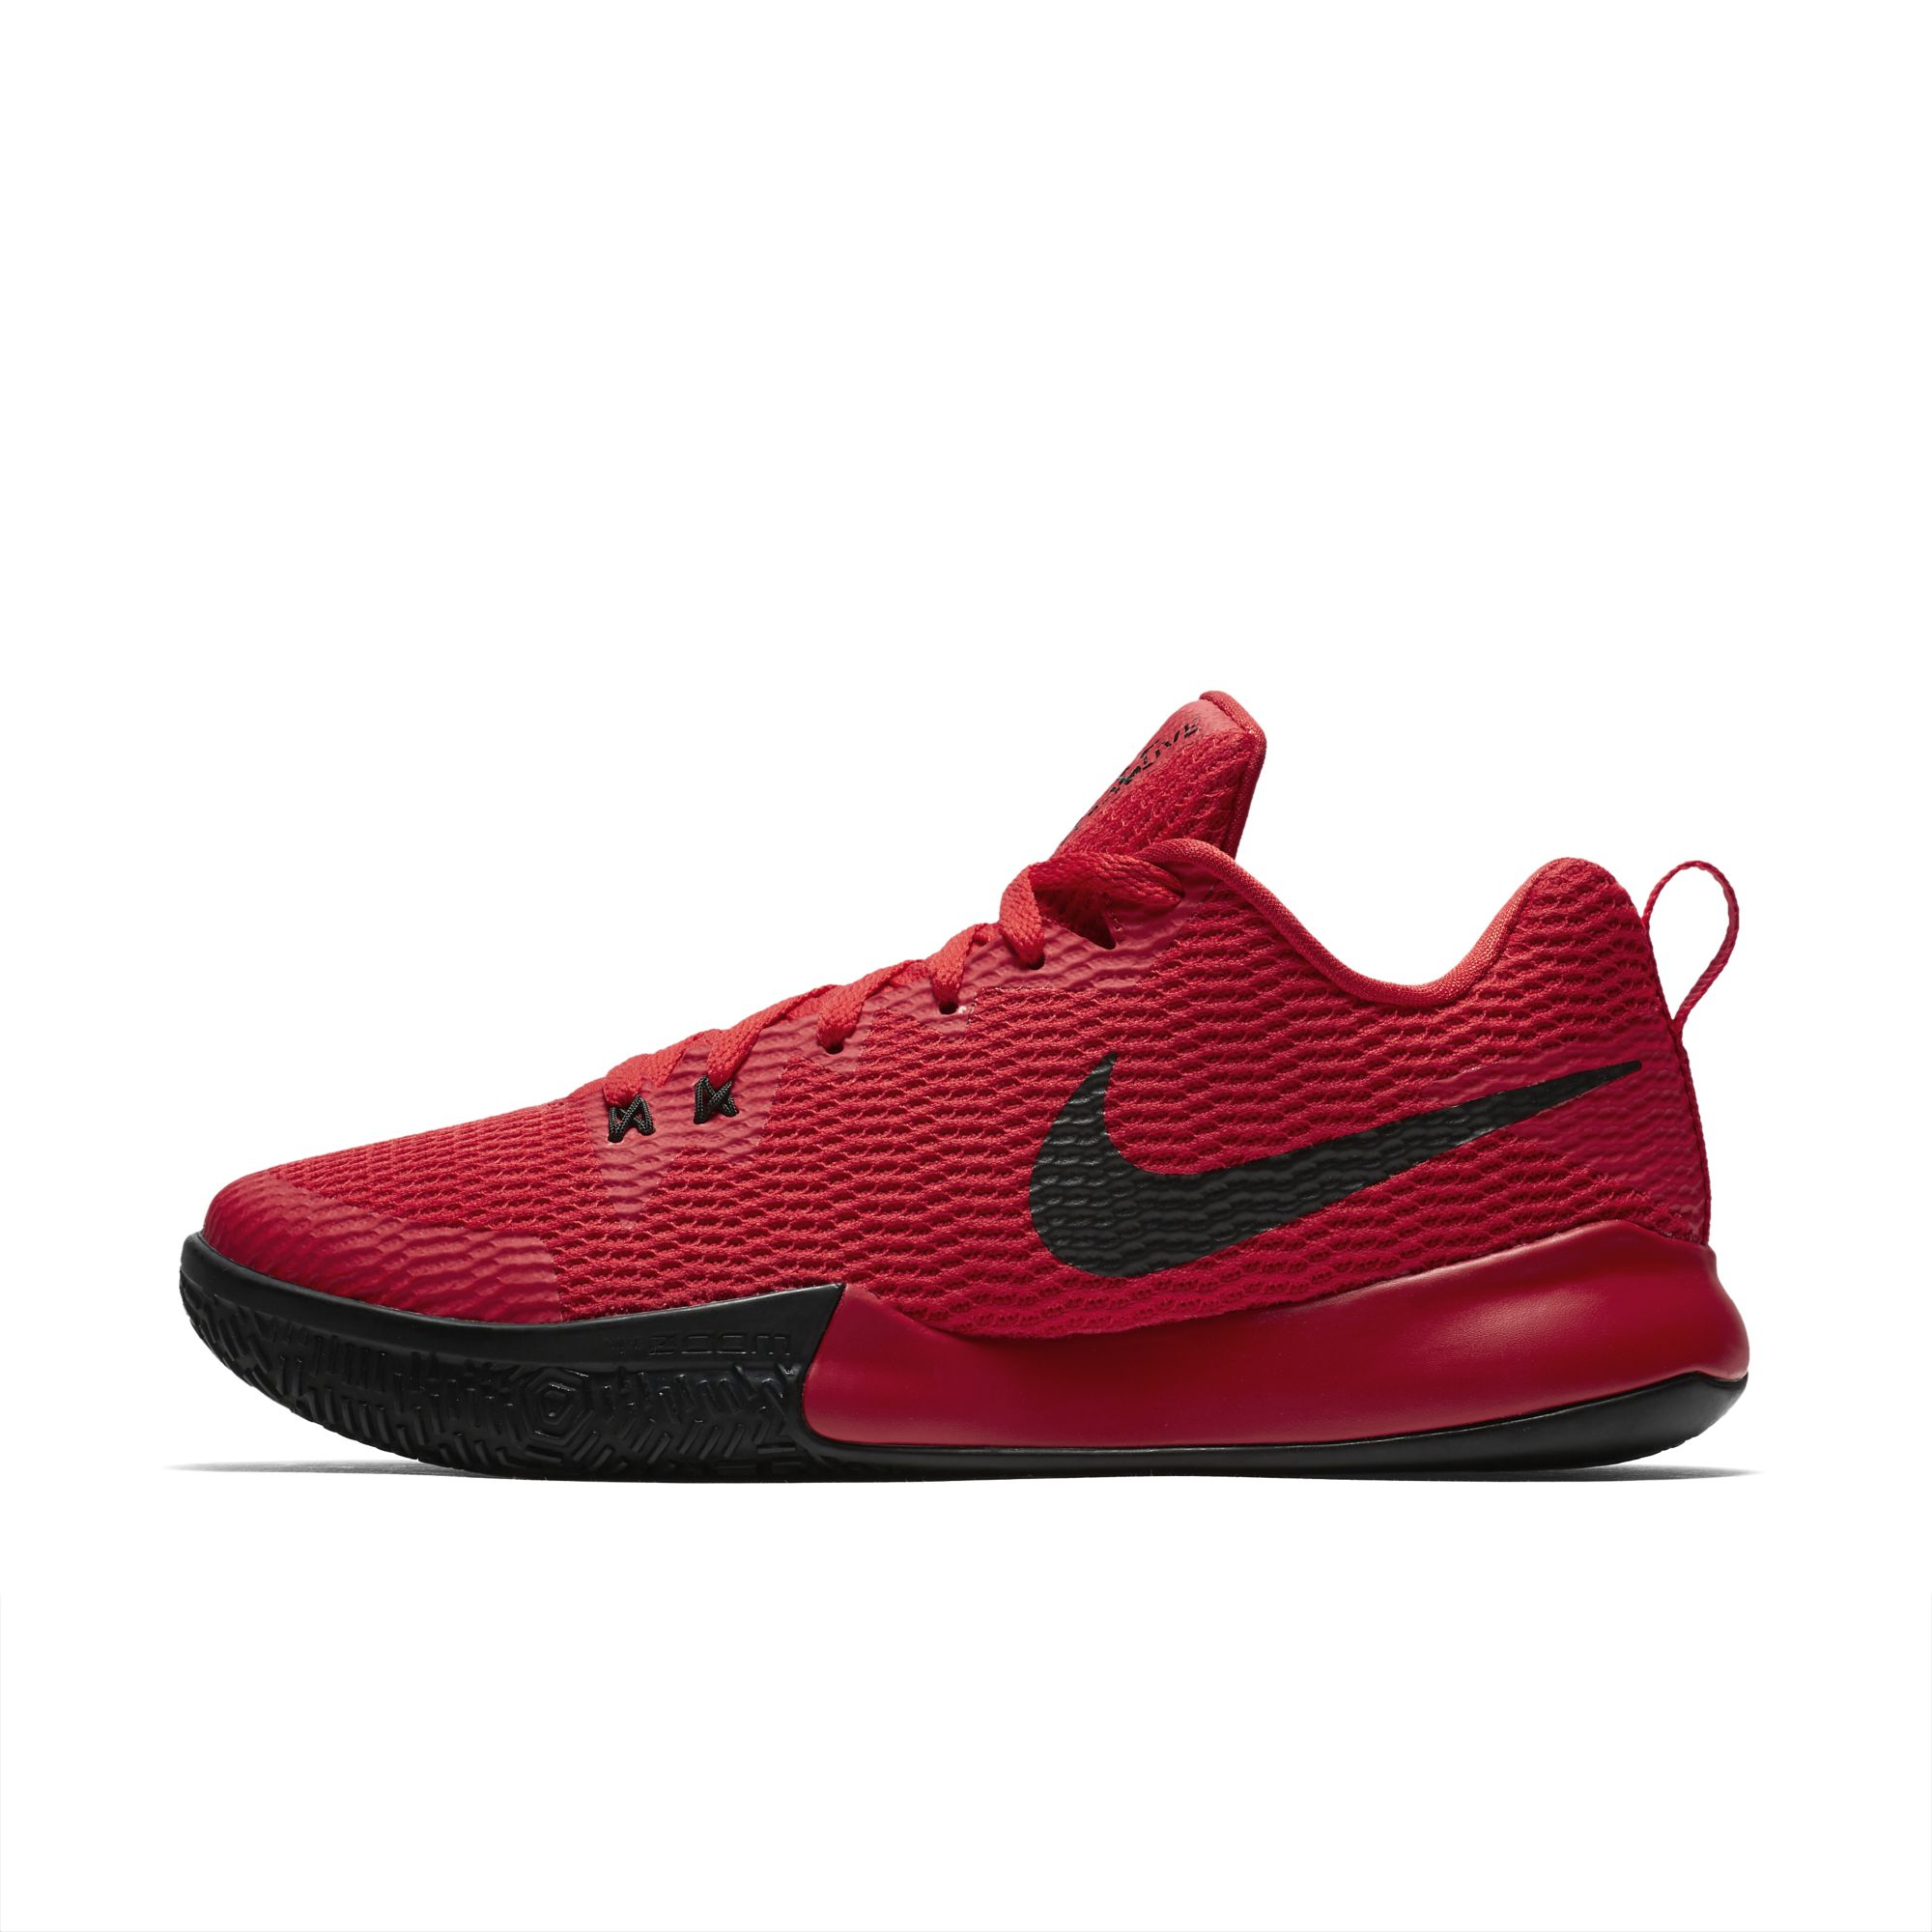 The Nike Zoom Live 2 is Nearly Identical to the Original ...